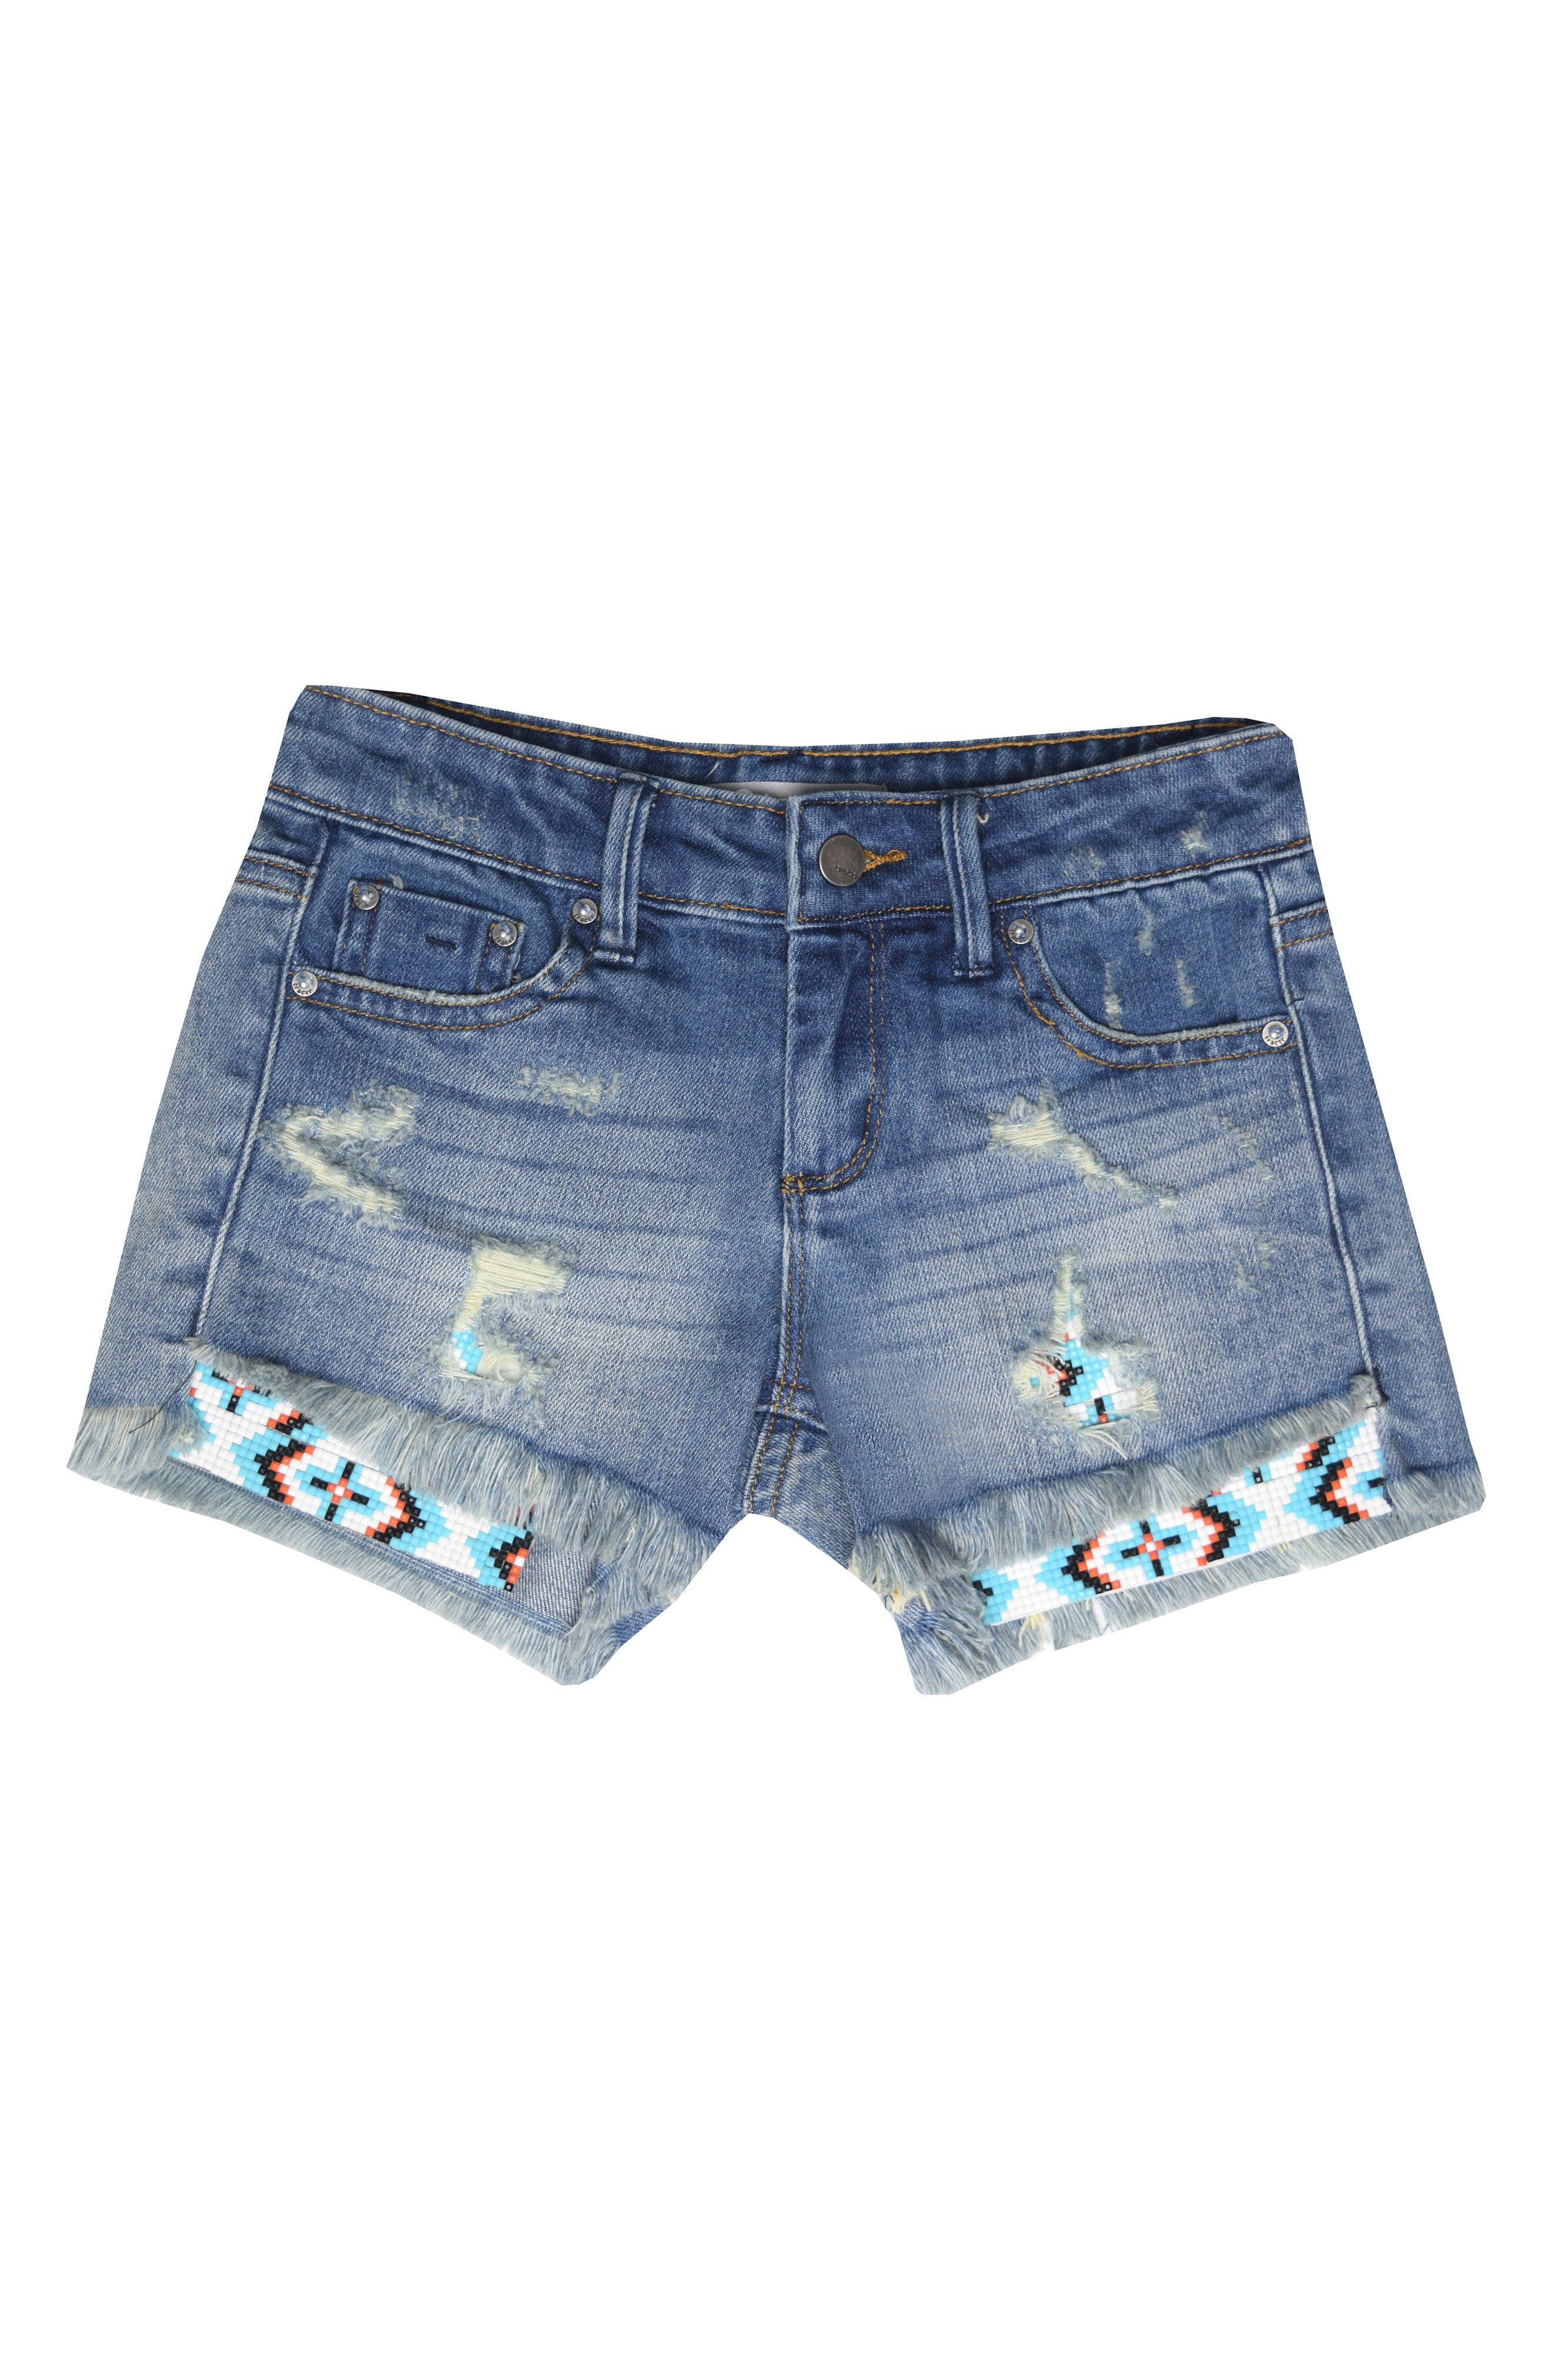 Beaded Distressed Denim Shorts,                         Main,                         color, Indigo